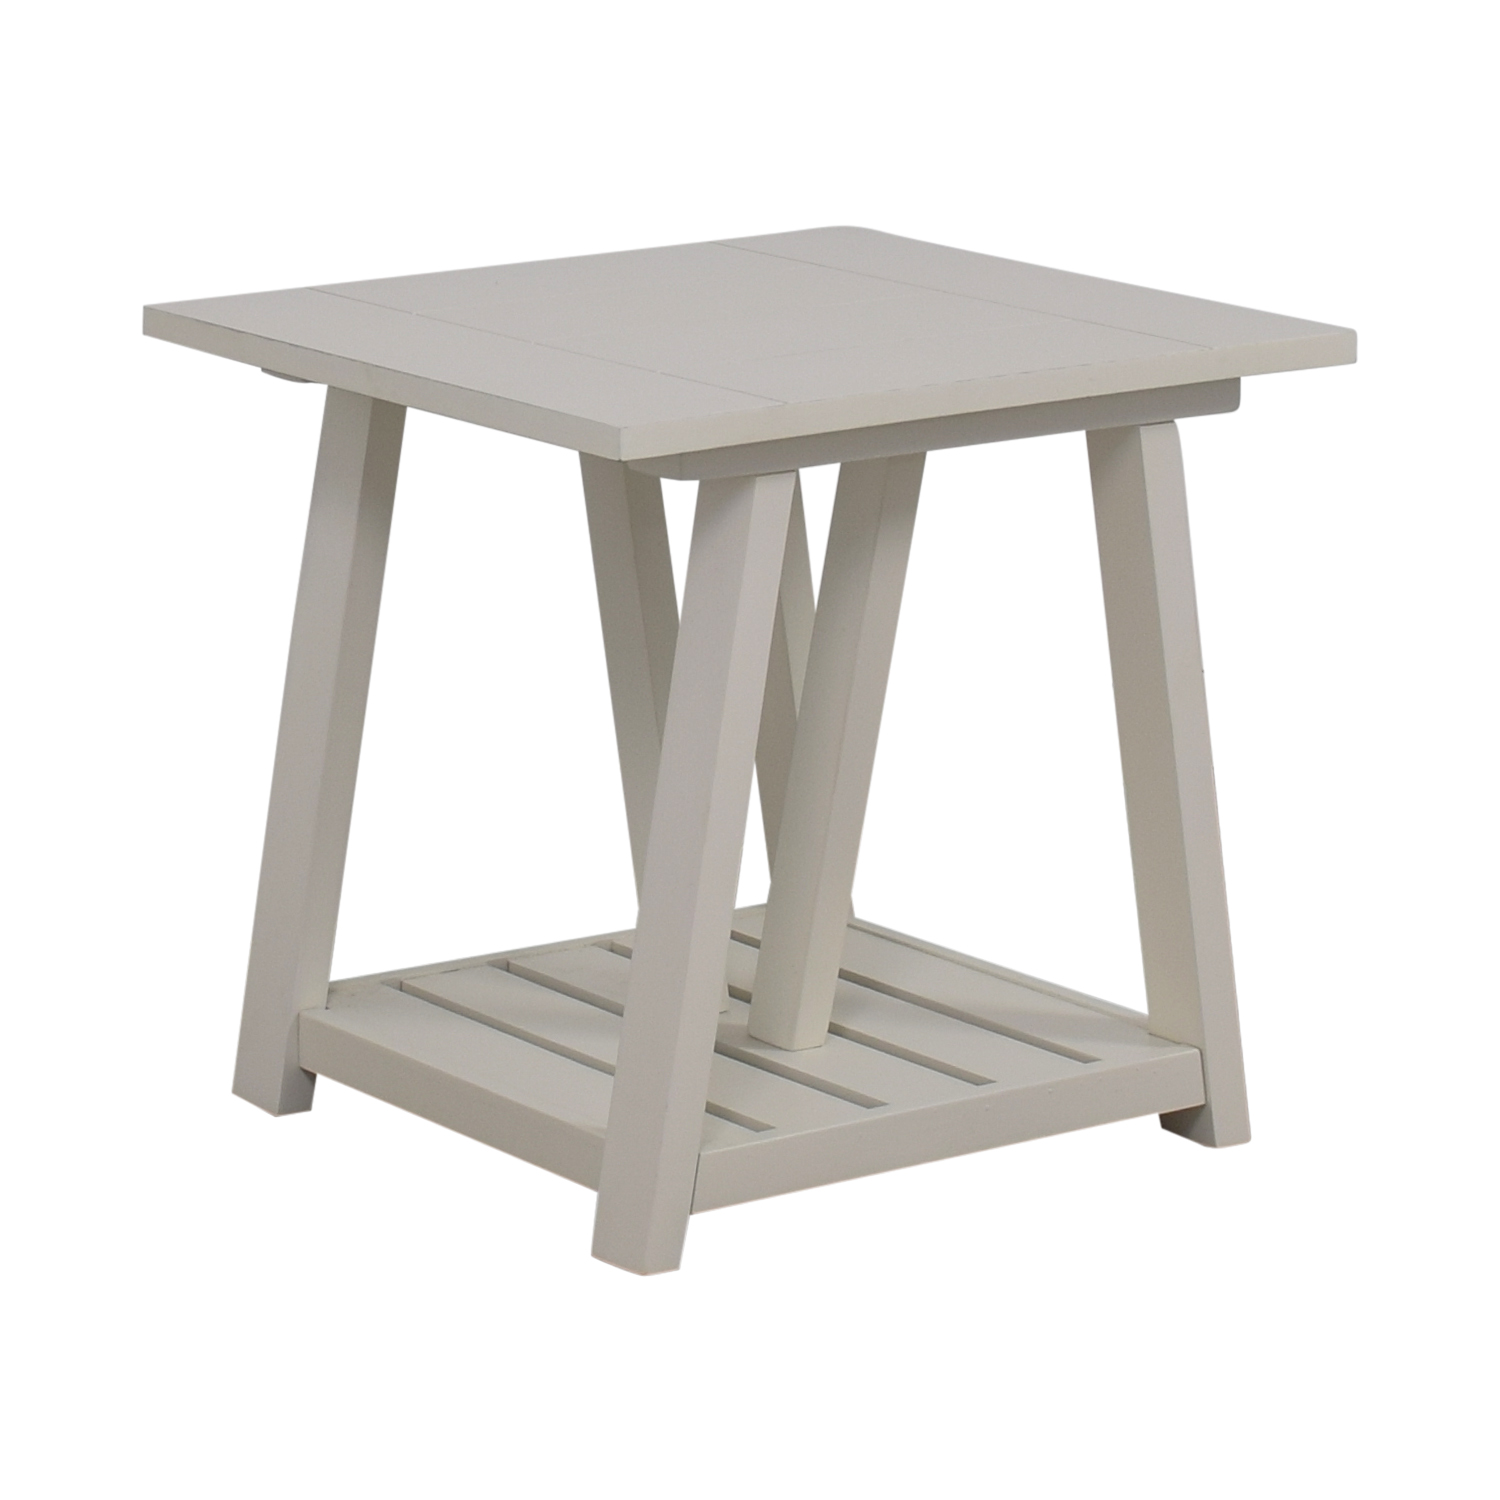 Birch Lane Birch Lane Fairborne White Side Table on sale